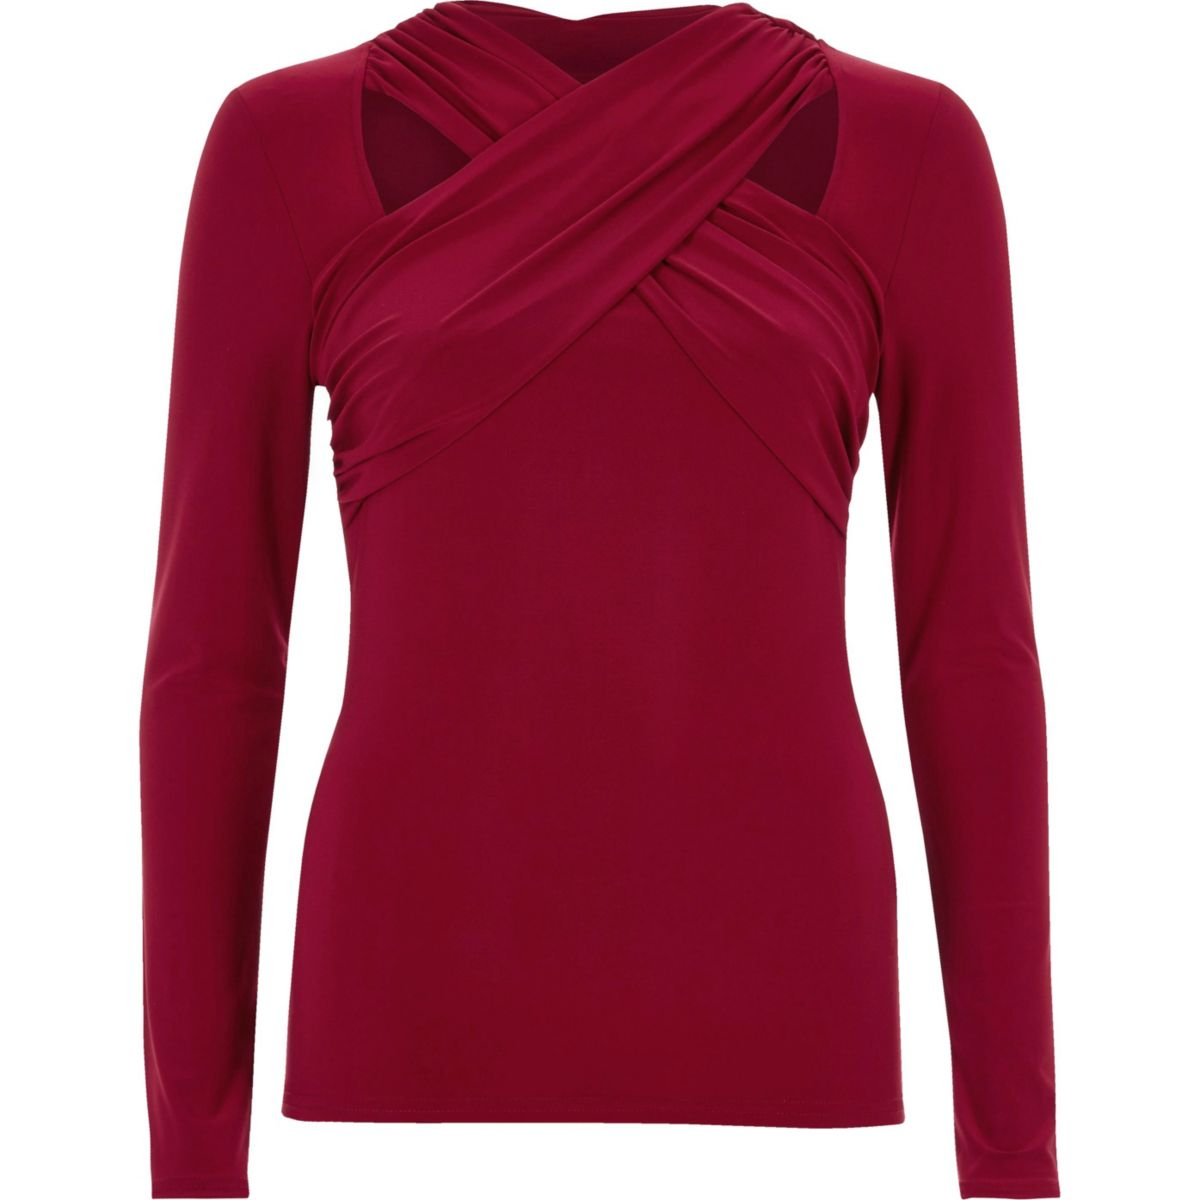 Red cross twist neck fitted long sleeve top